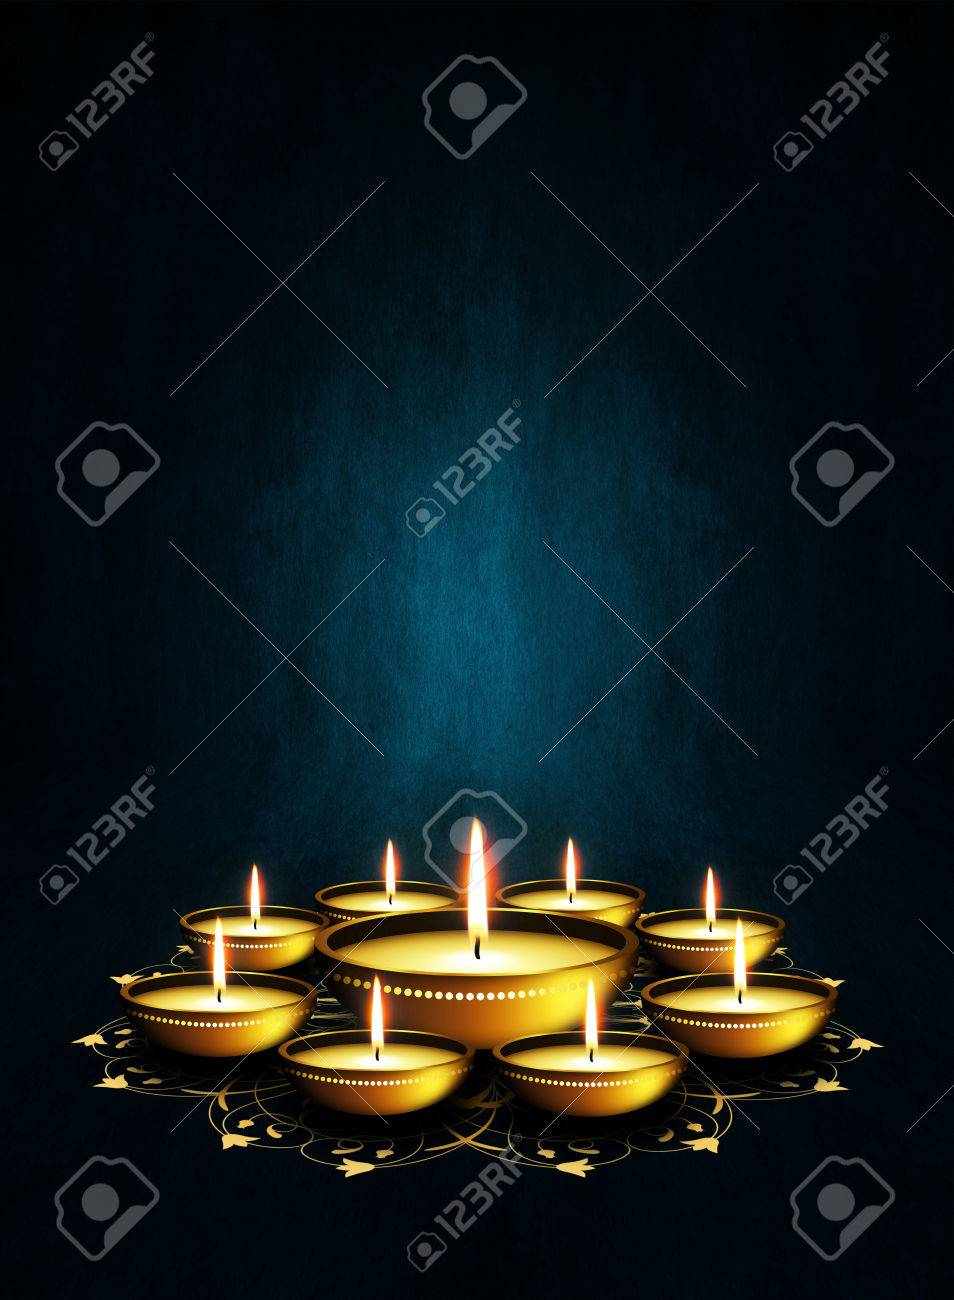 Oil Lamp With Place For Diwali Greetings Over Dark Blue Background